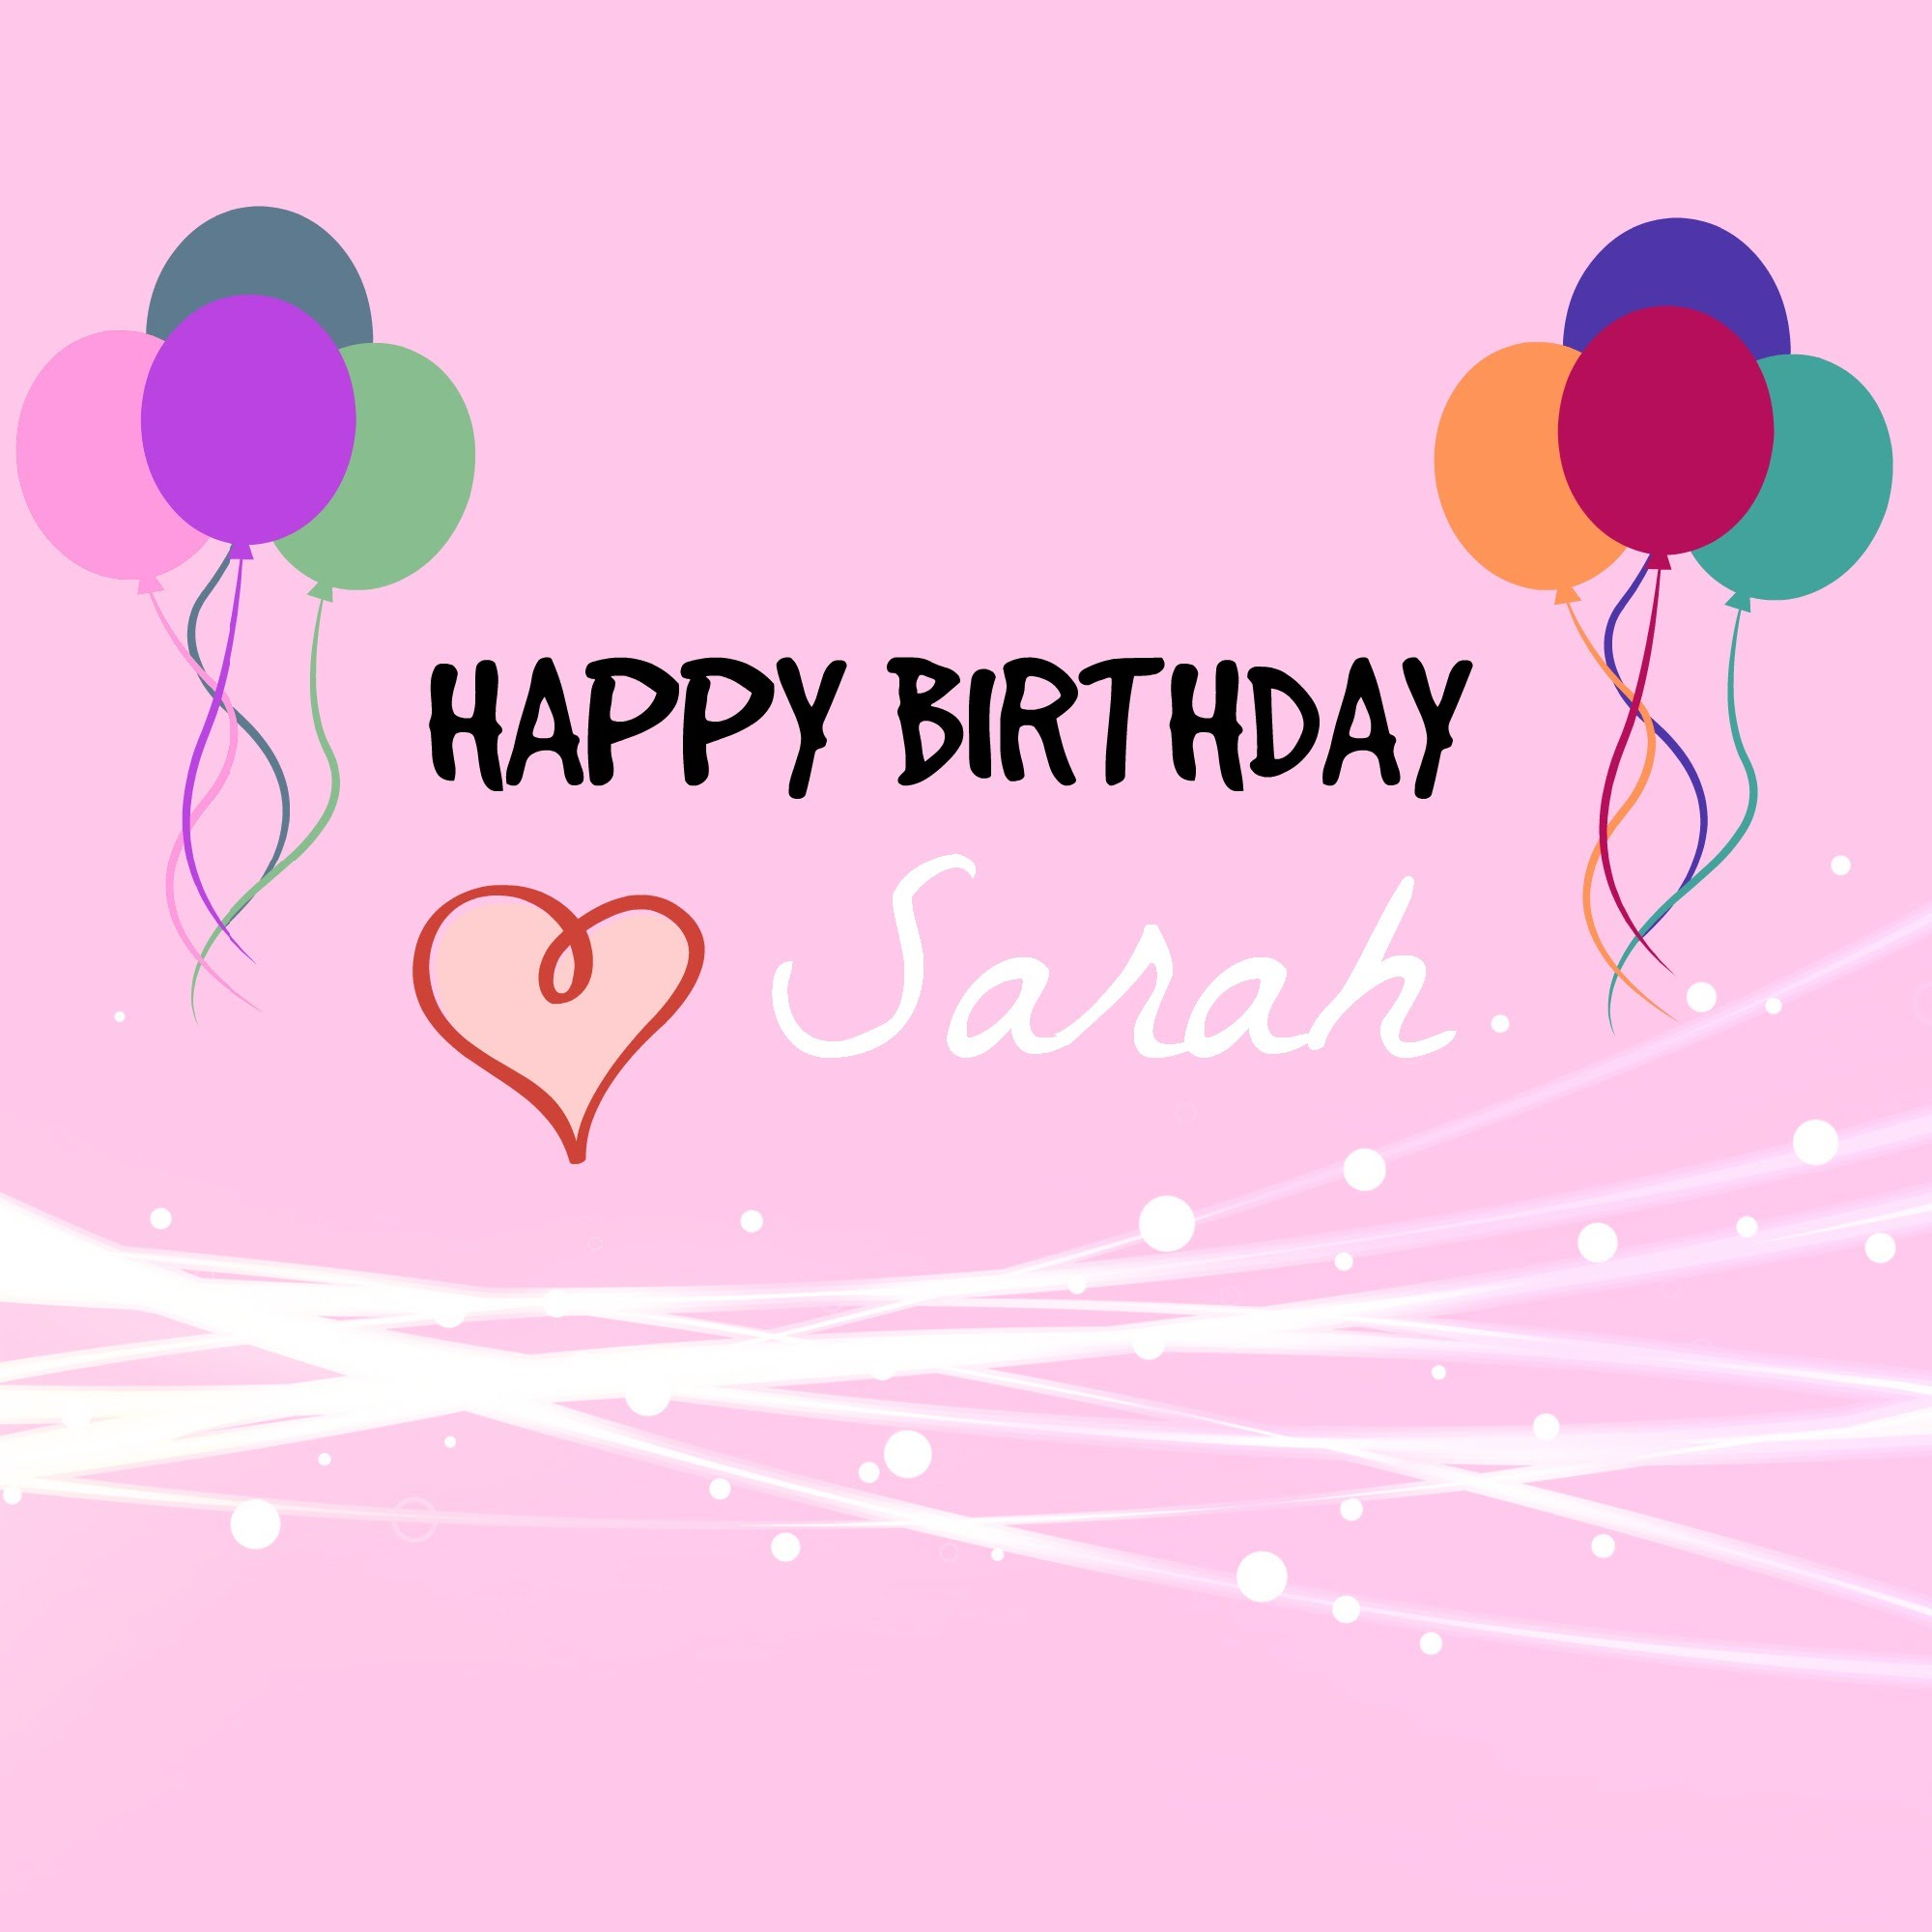 happy birthday sarah images ; maxresdefault-3